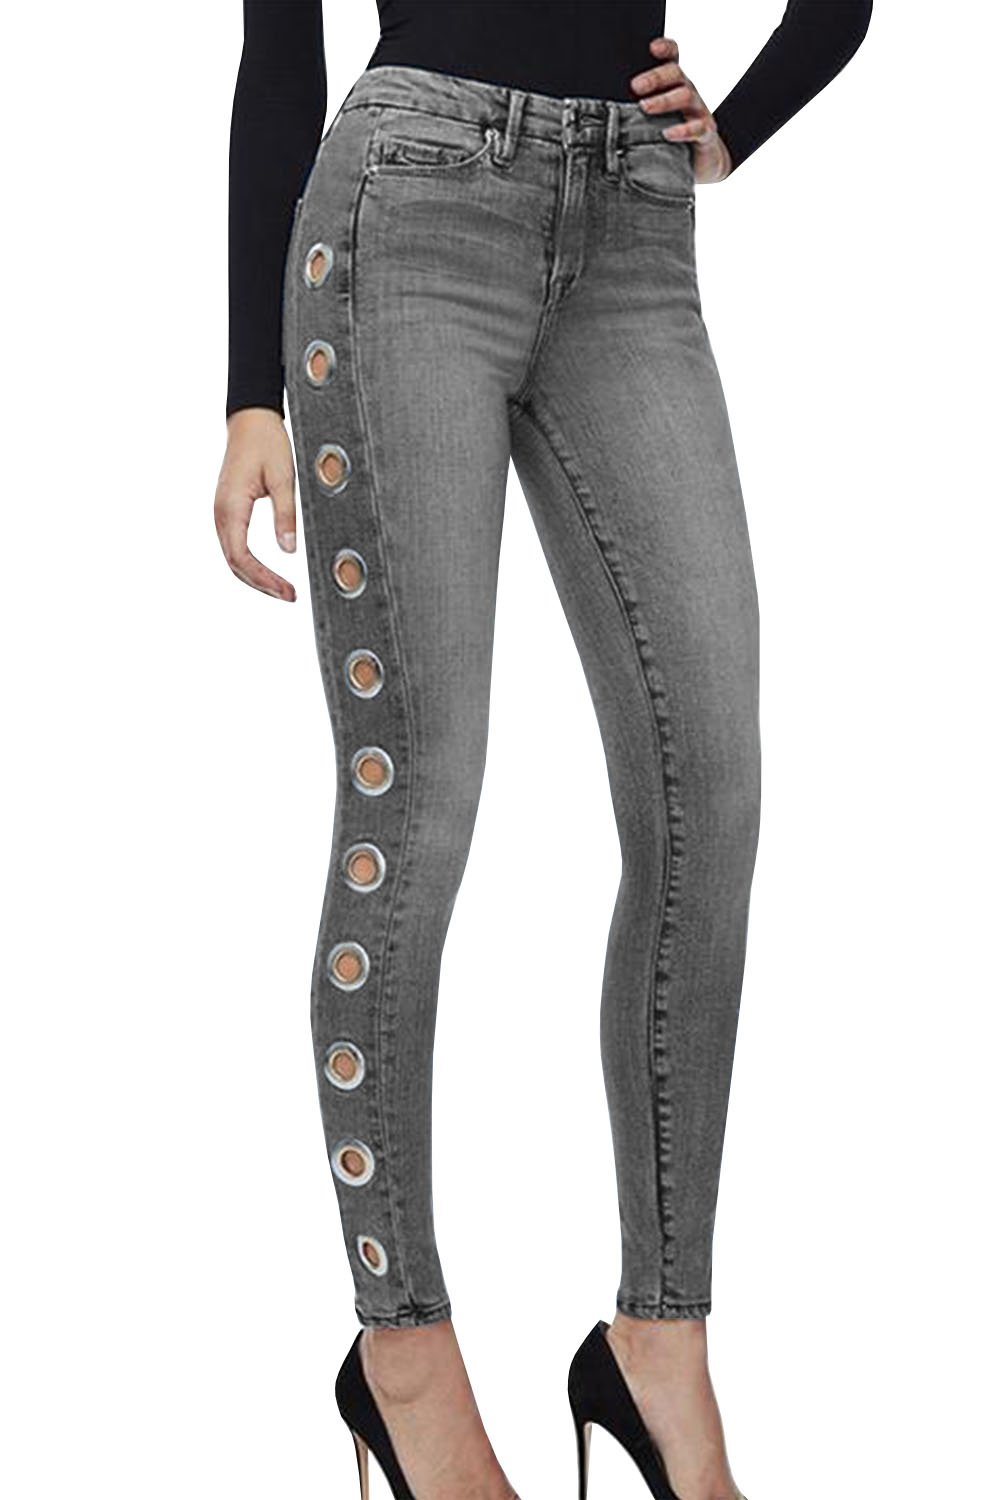 Karlywindow Women's Casual Skinny Jeans High Waist Full Length Side Holes Washed Stretchy Denim Jeans